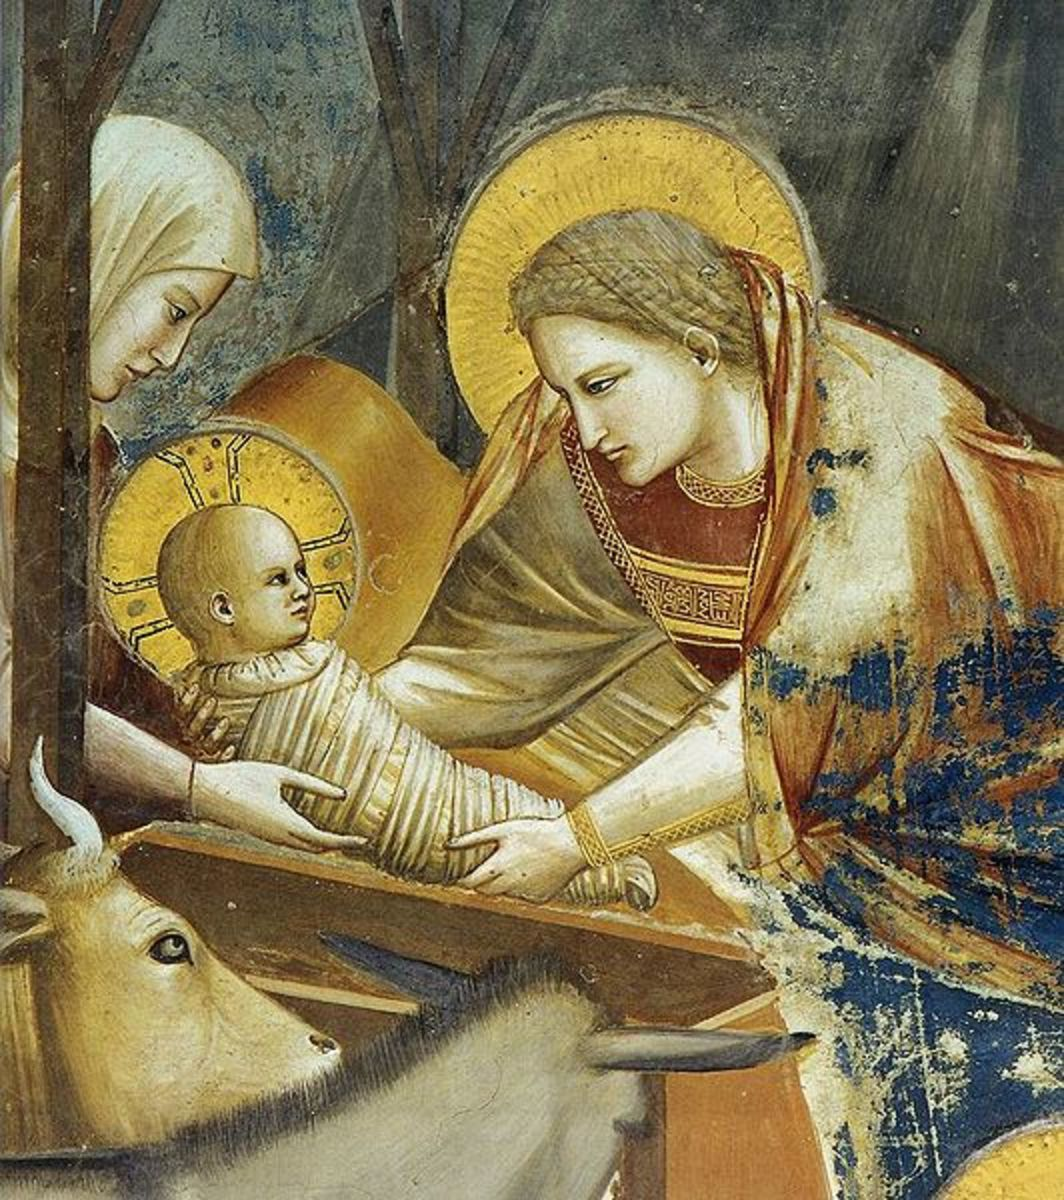 Giotto, Nativity and the Shepherds Announcement (1305), Padua Cappella degli Scrovegni - Detail